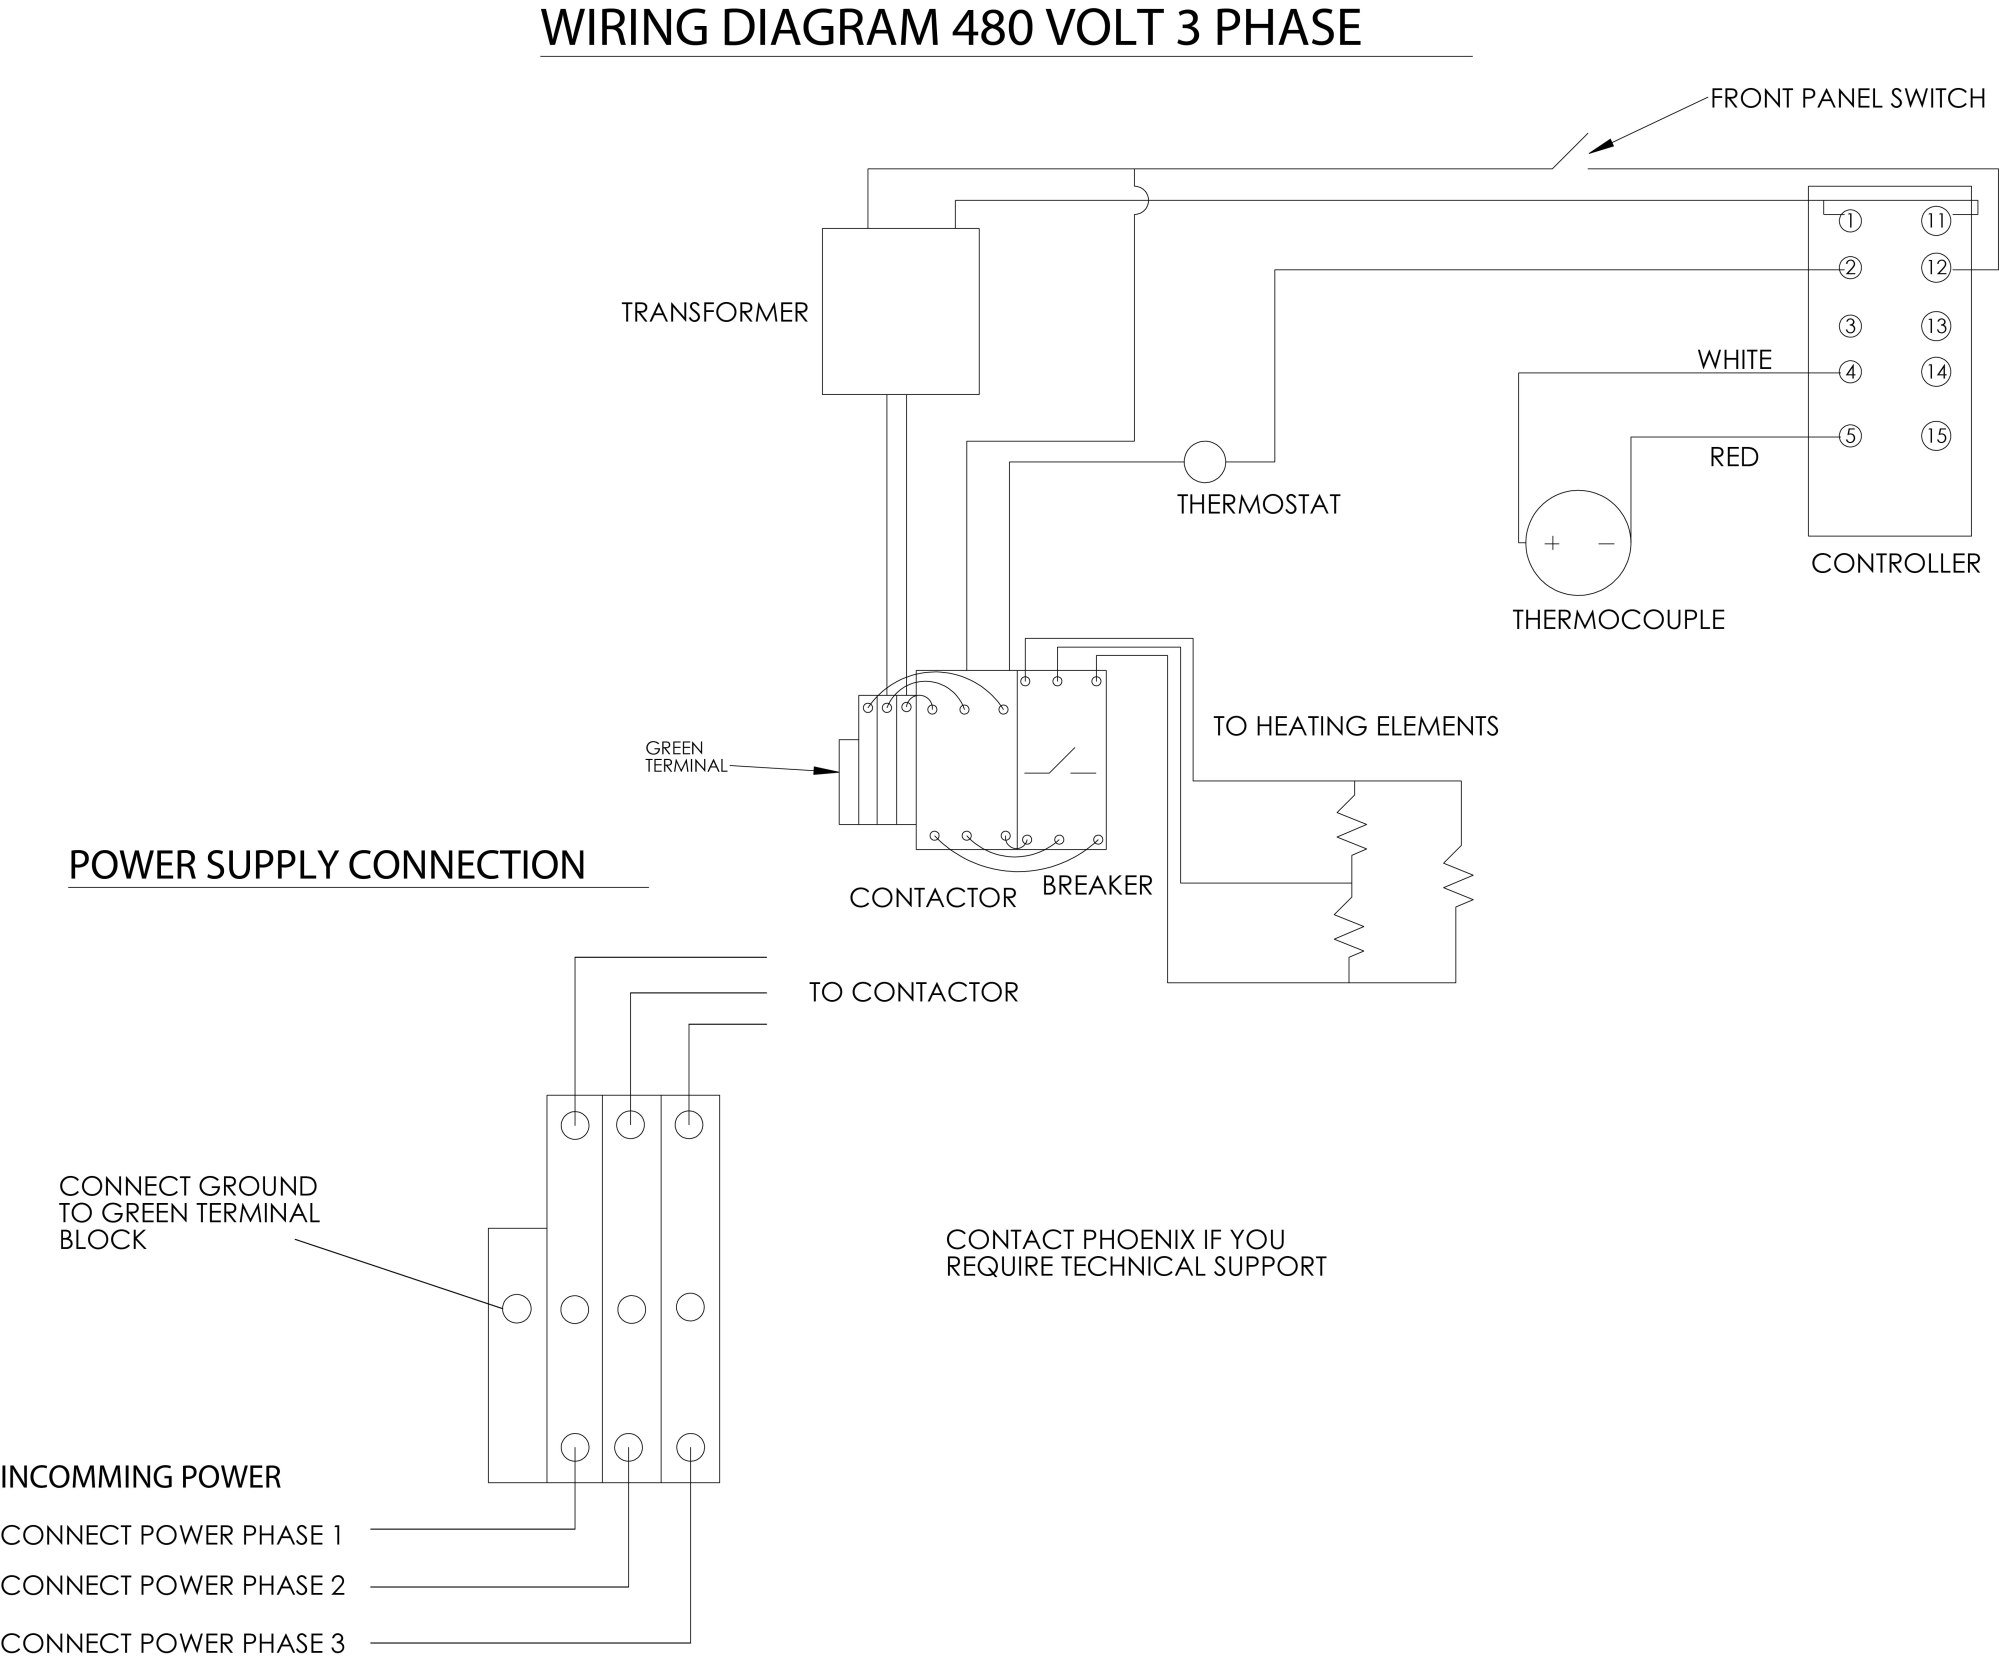 hight resolution of 480v schematic wiring wiring diagram host 480v schematic wiring